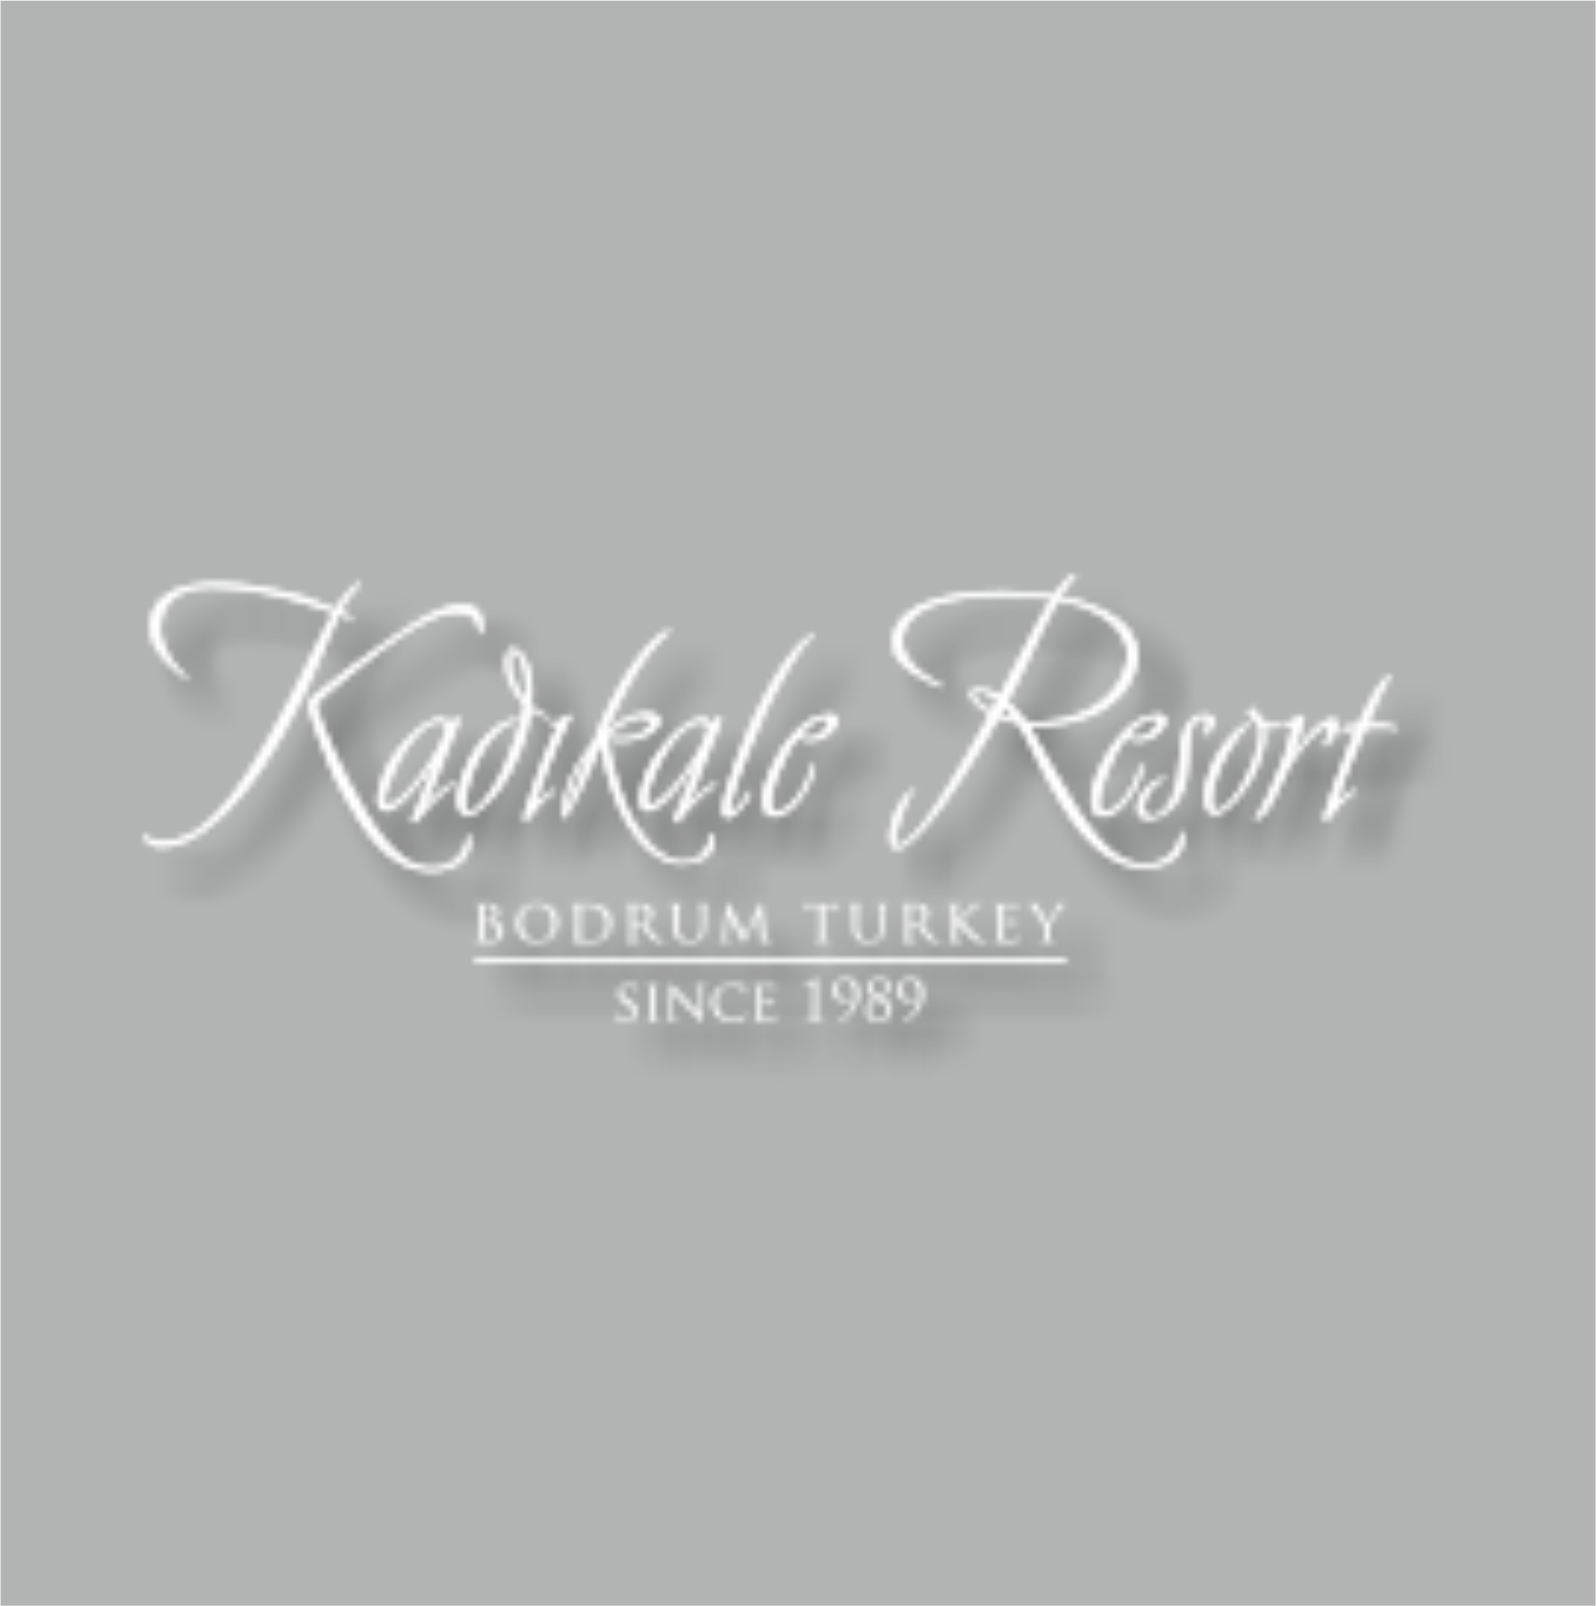 KADIKALE RESORT